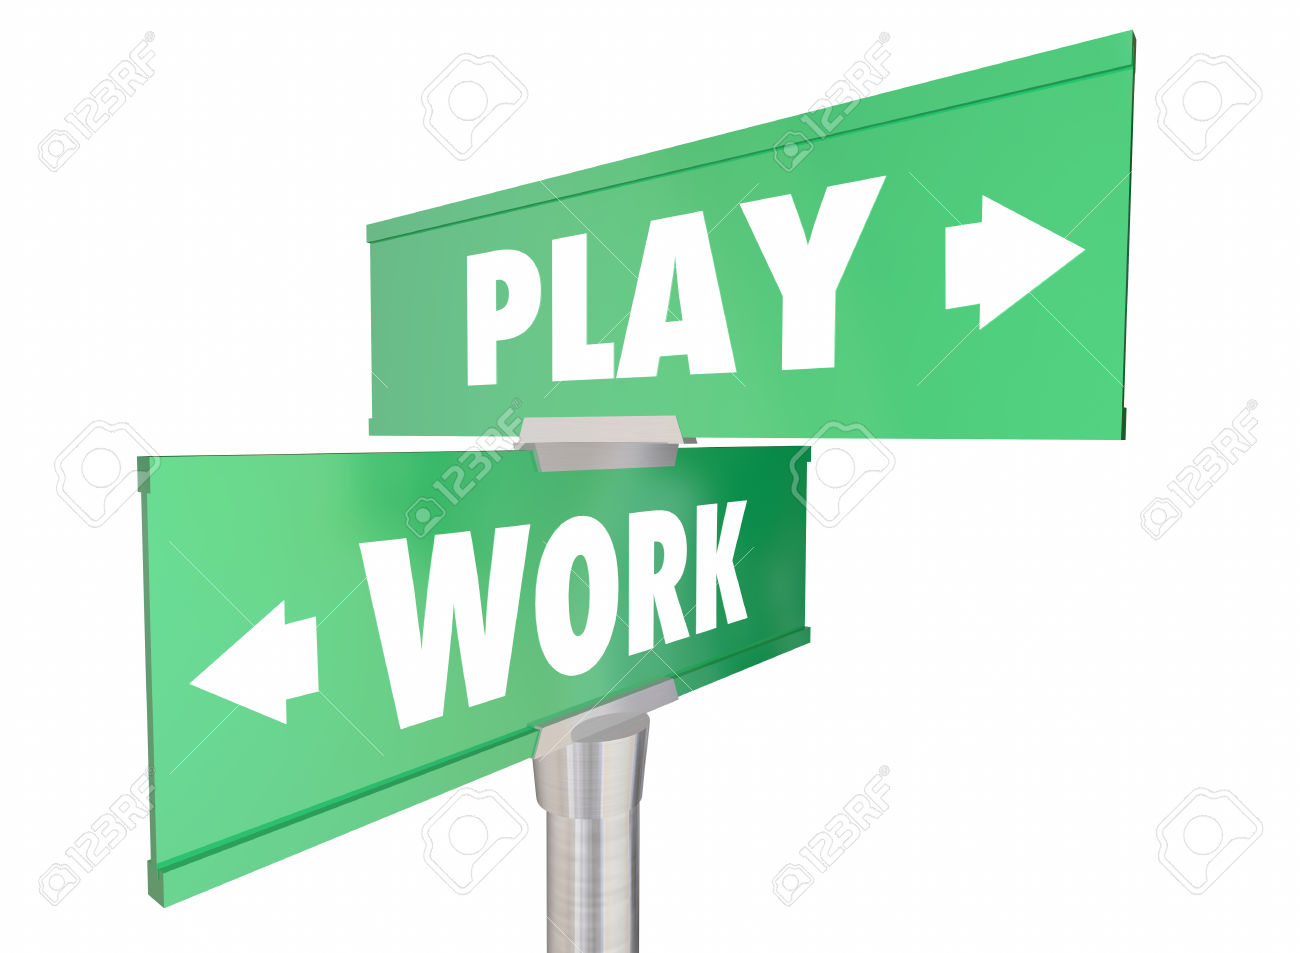 Work Vs Play Two Way Road Signs Words 3d Illustration Stock Photo.